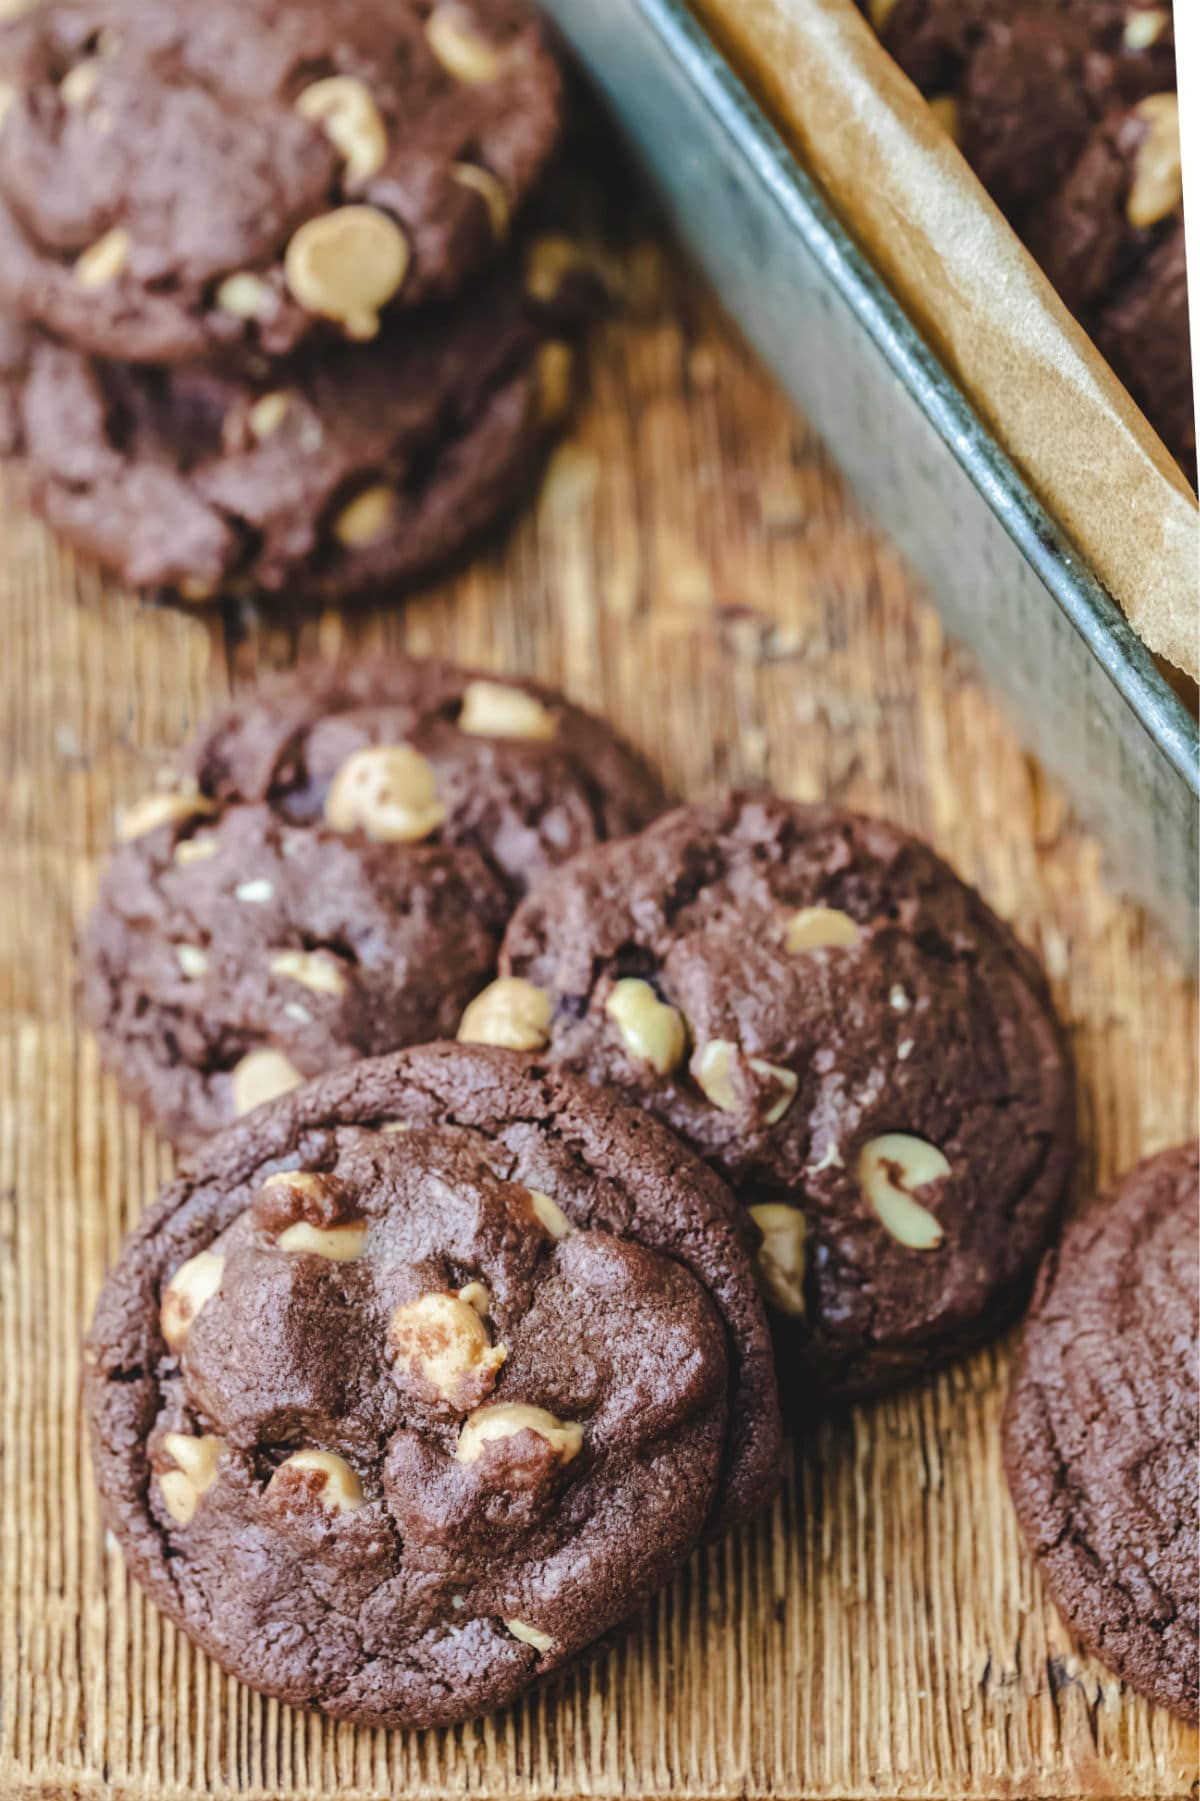 Chocolate peanut butter cookies next to a tin of cookies